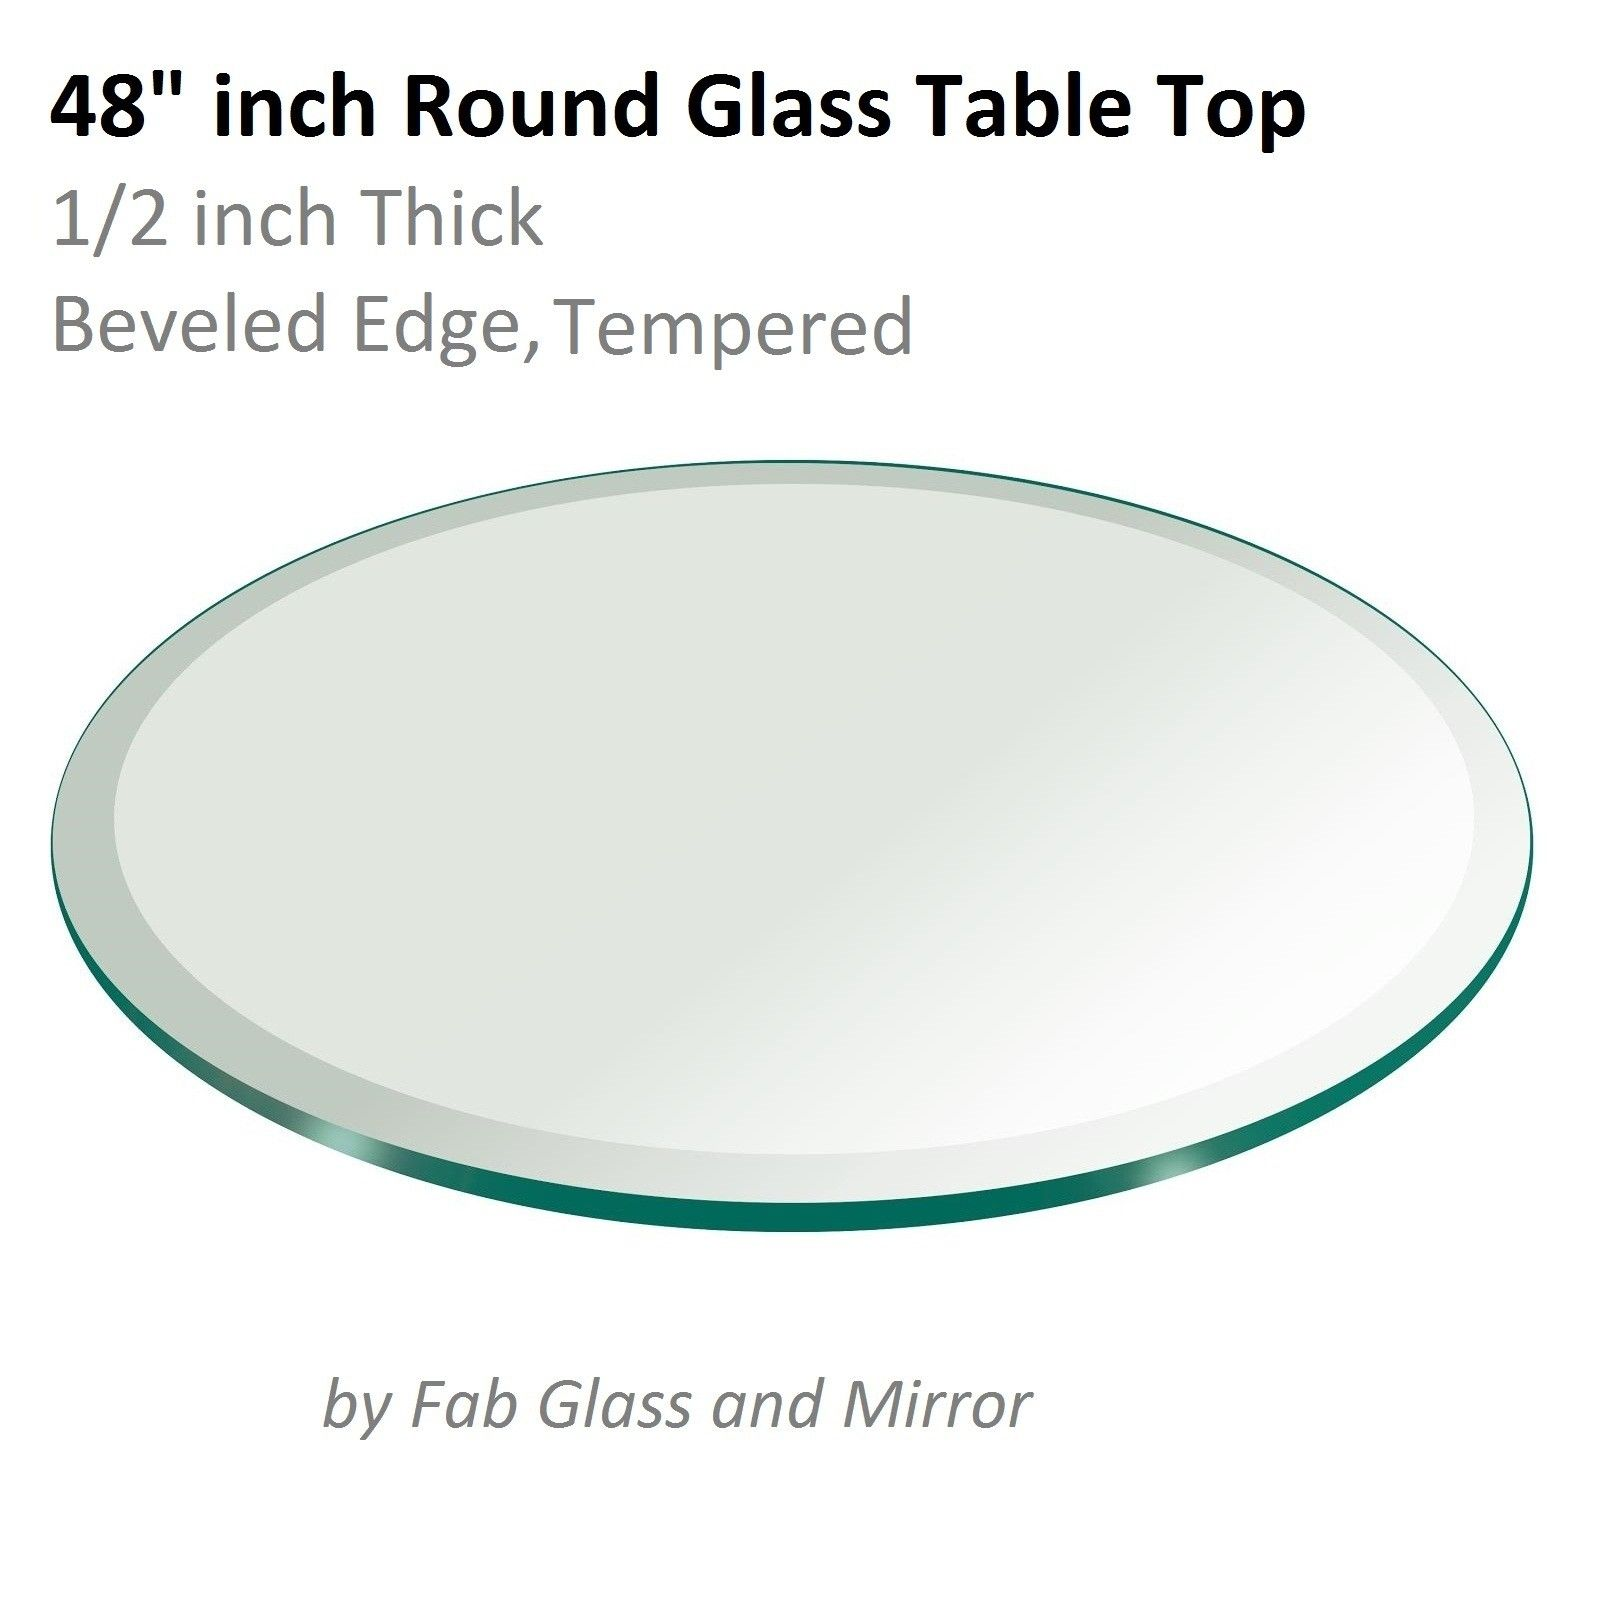 48 Round Glass Table Top 1/2 Thick